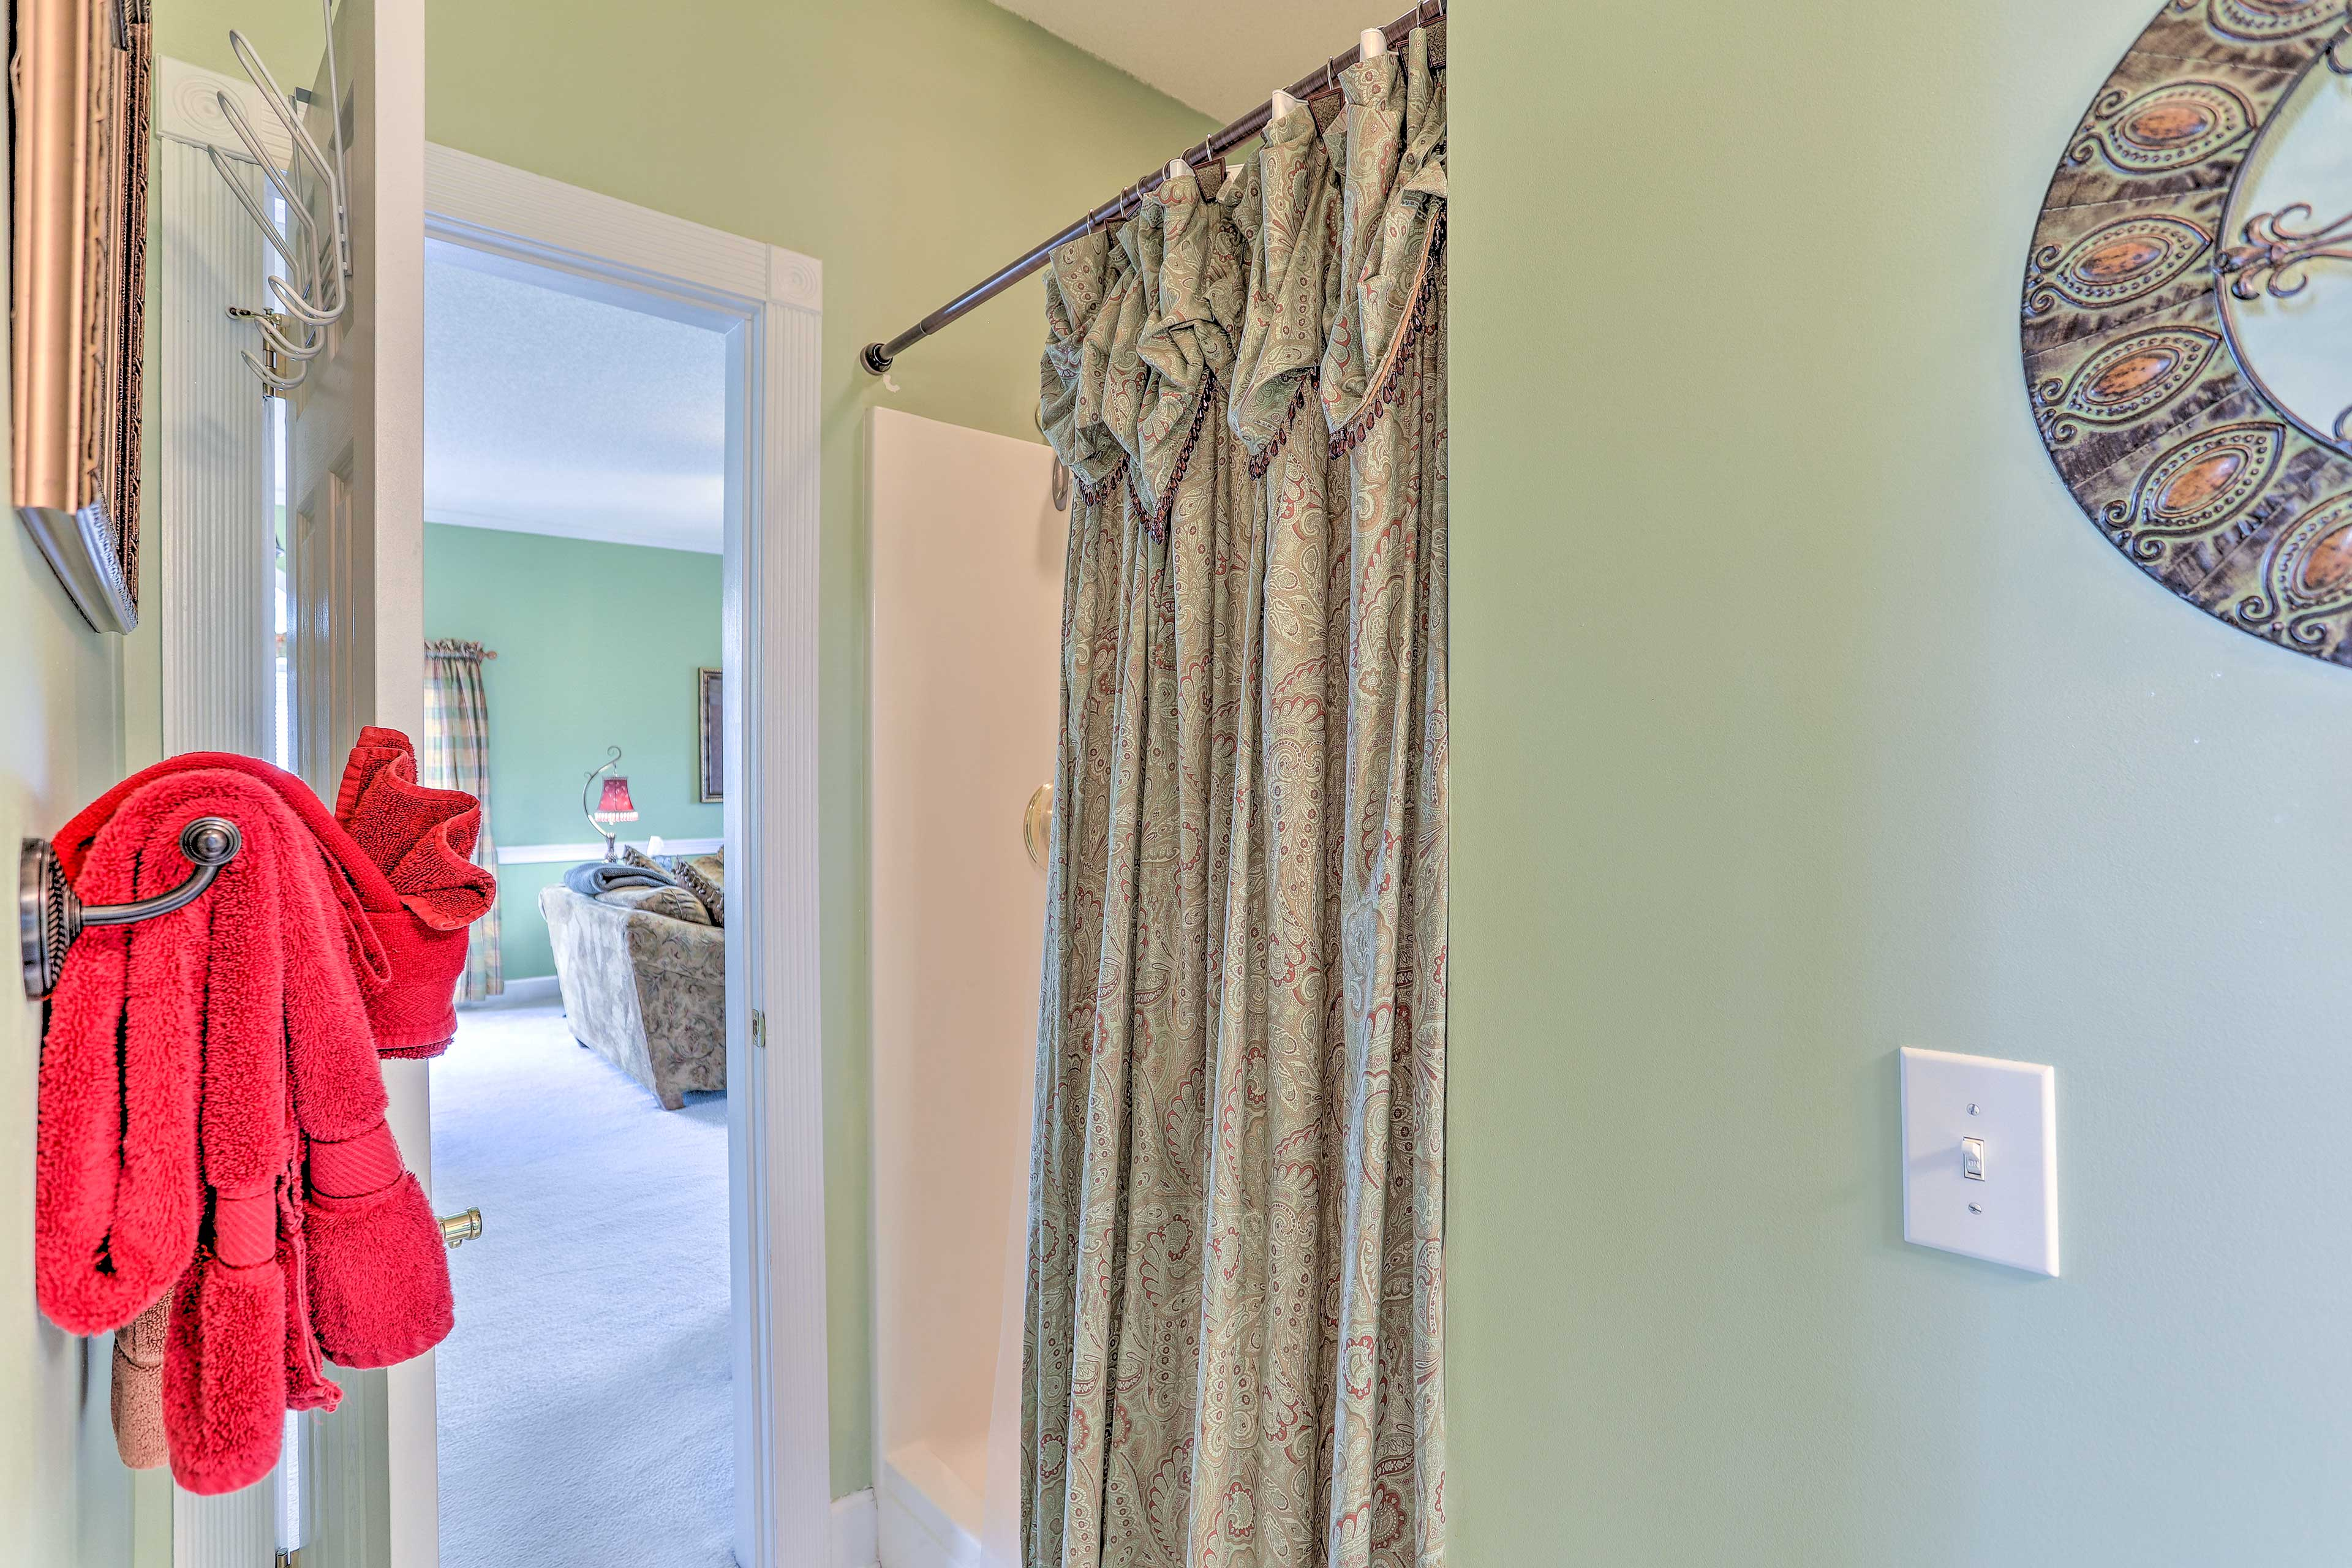 Two separate bathrooms provide plenty of privacy.